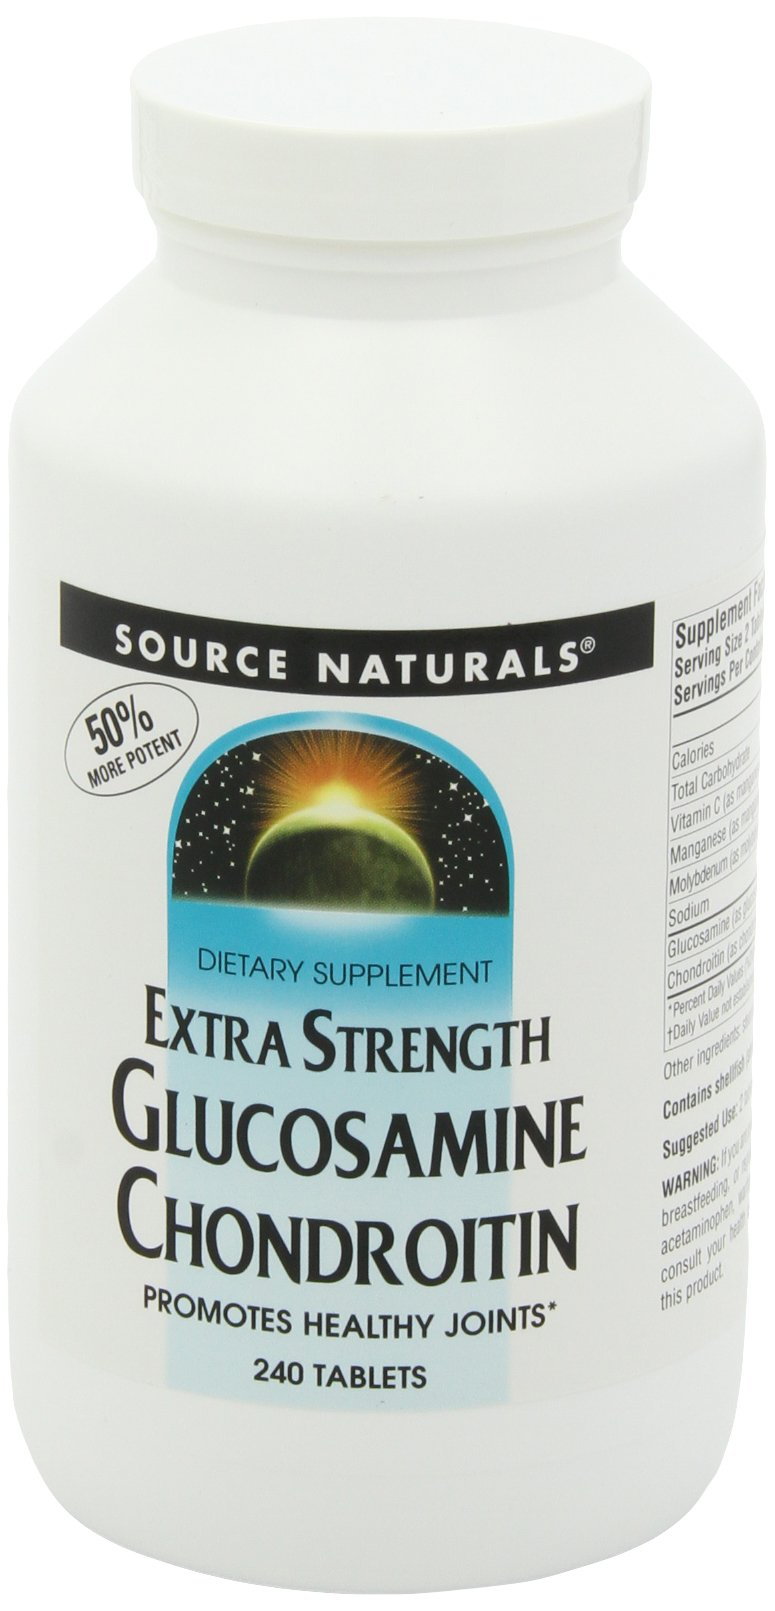 SOURCE NATURALS Glucosamine Chondroitin Extra Strength Tablet, 240 Count by Source Naturals